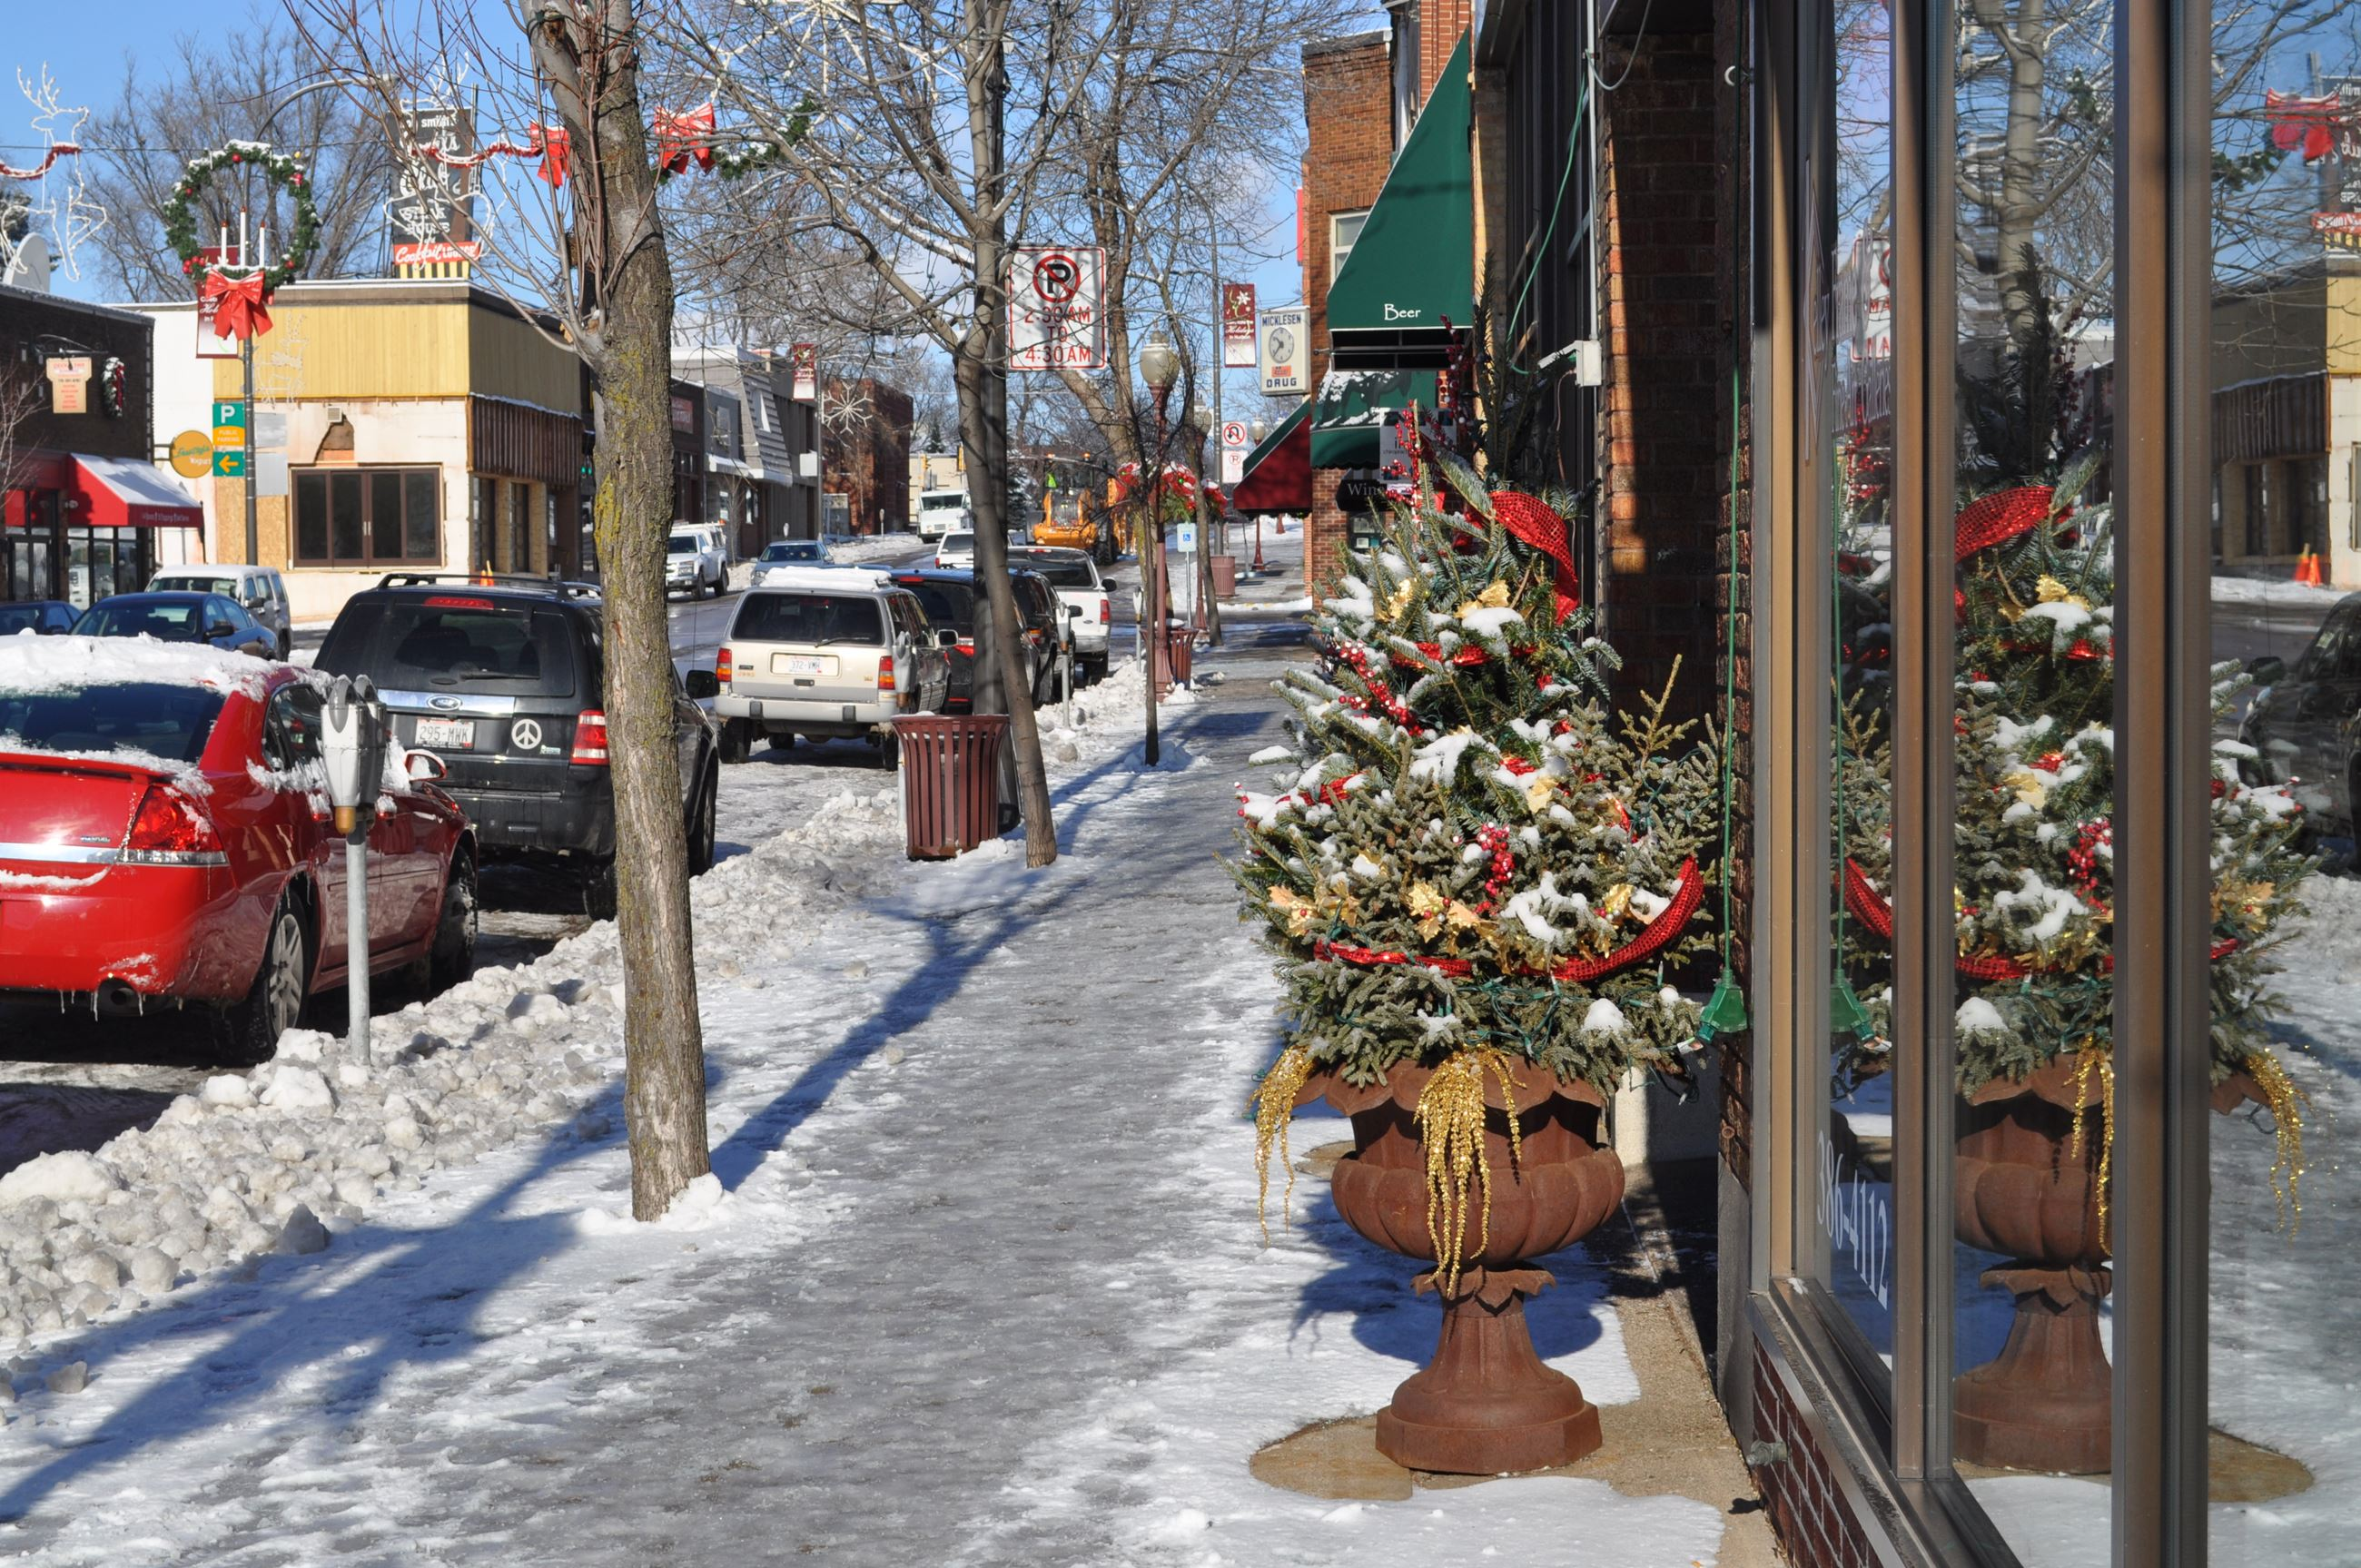 2nd Street Holiday Decorations